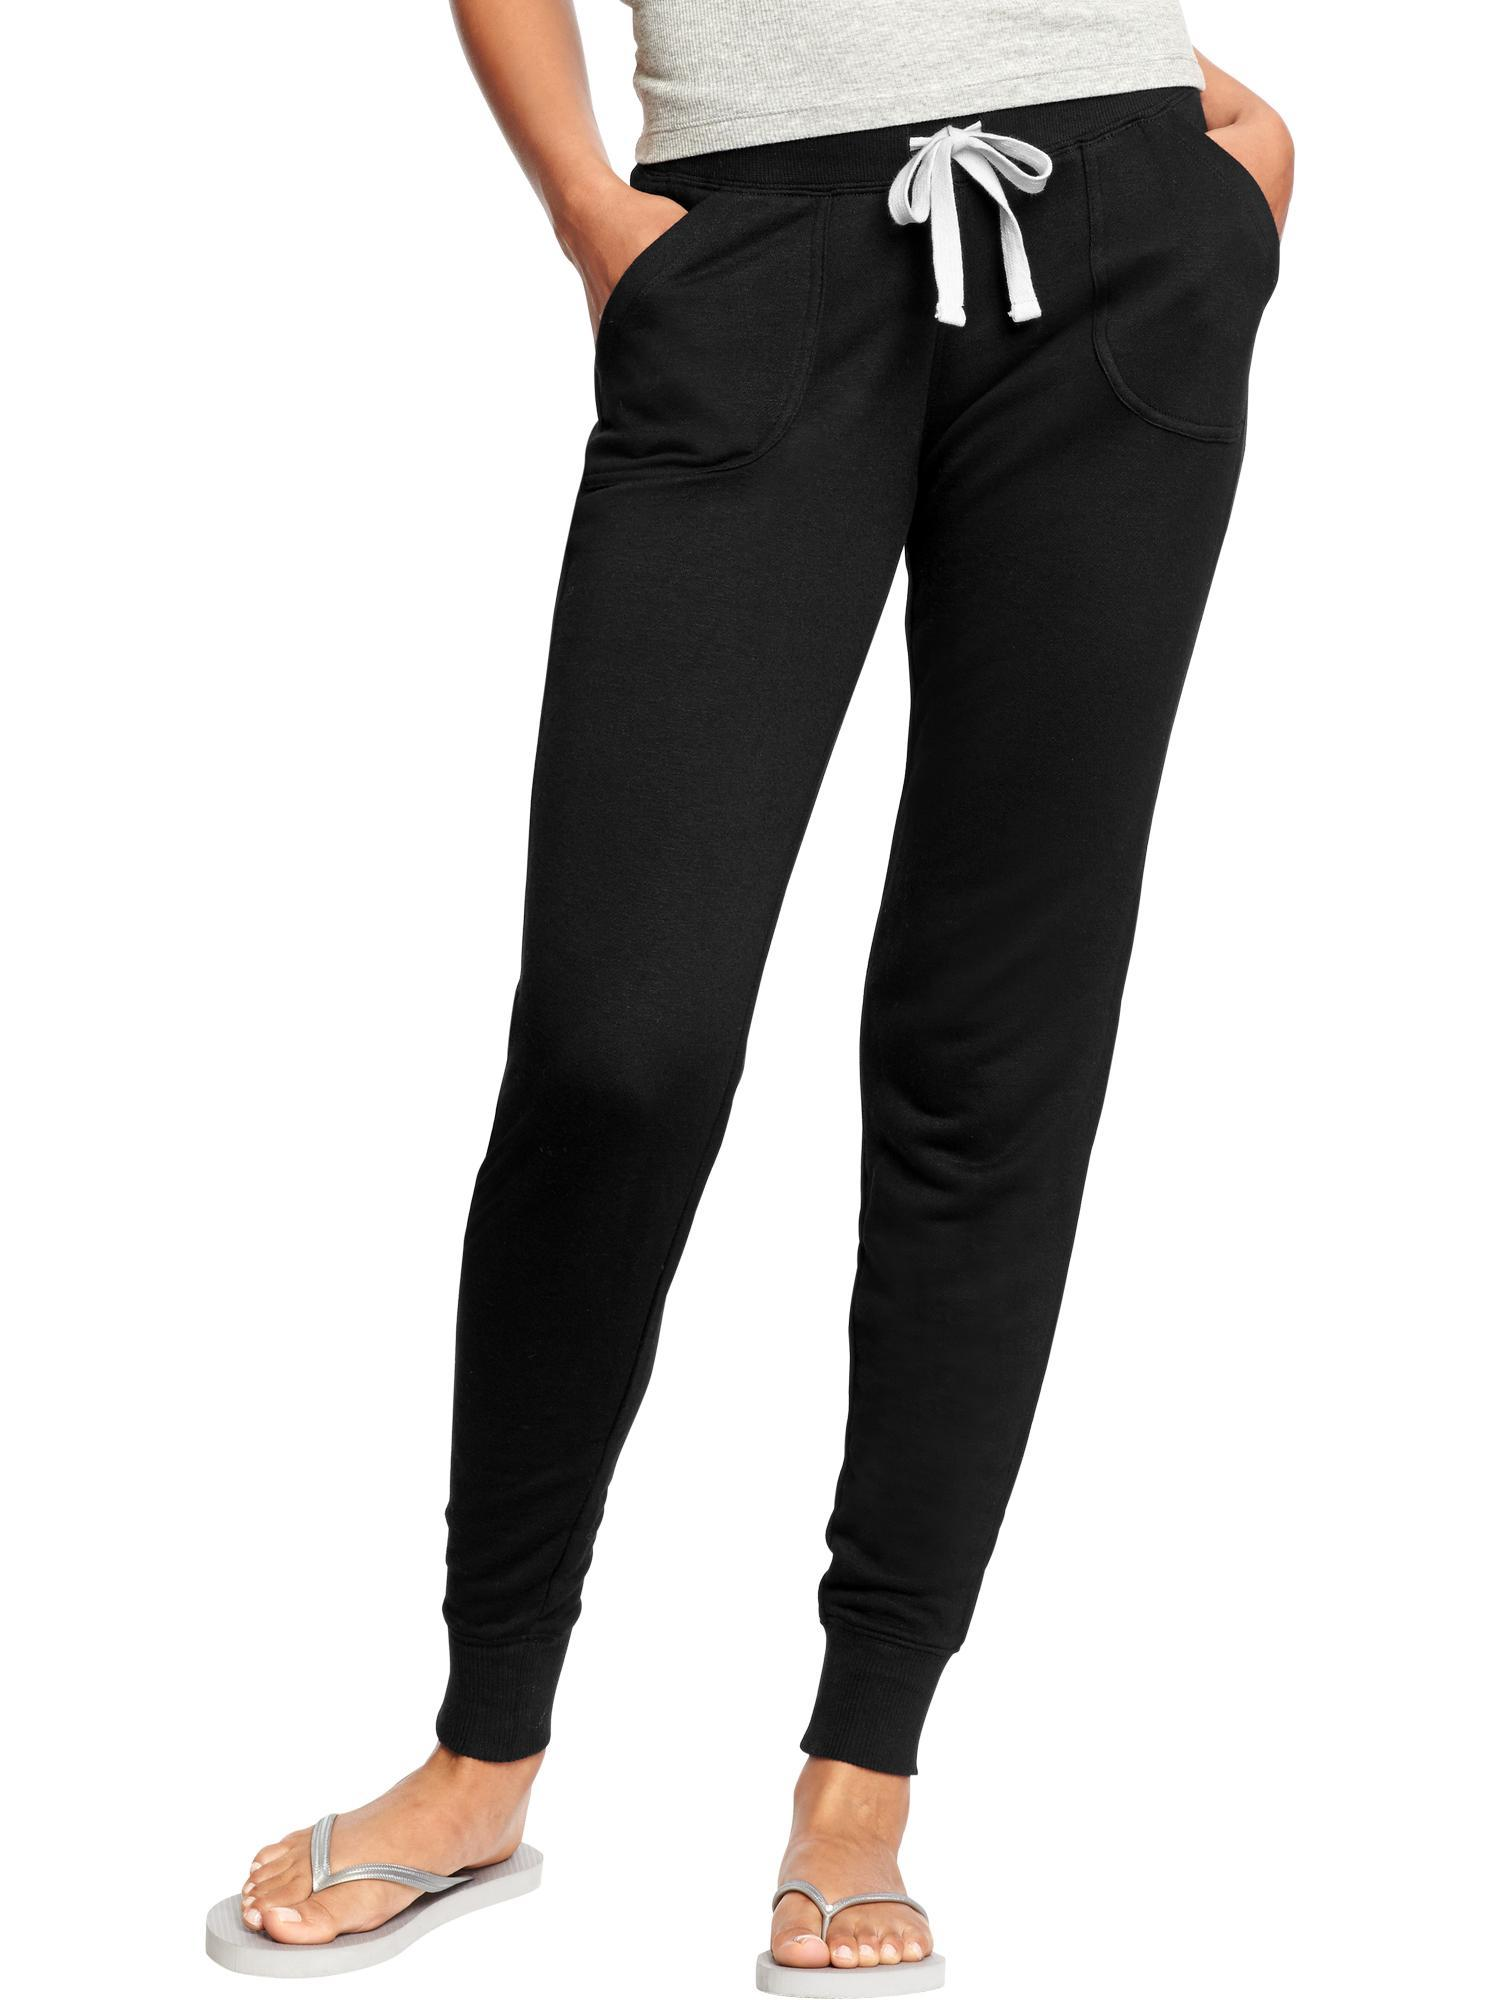 Women's Cigarette & Skinny Trousers The slim pant is an essential silhouette for the modern wardrobe. Flattering and stylish, it's endlessly versatile: Whether you opt for a pair of cigarette trousers or skinny pants, you're guaranteed a sleek look that takes you from desk to dinner.